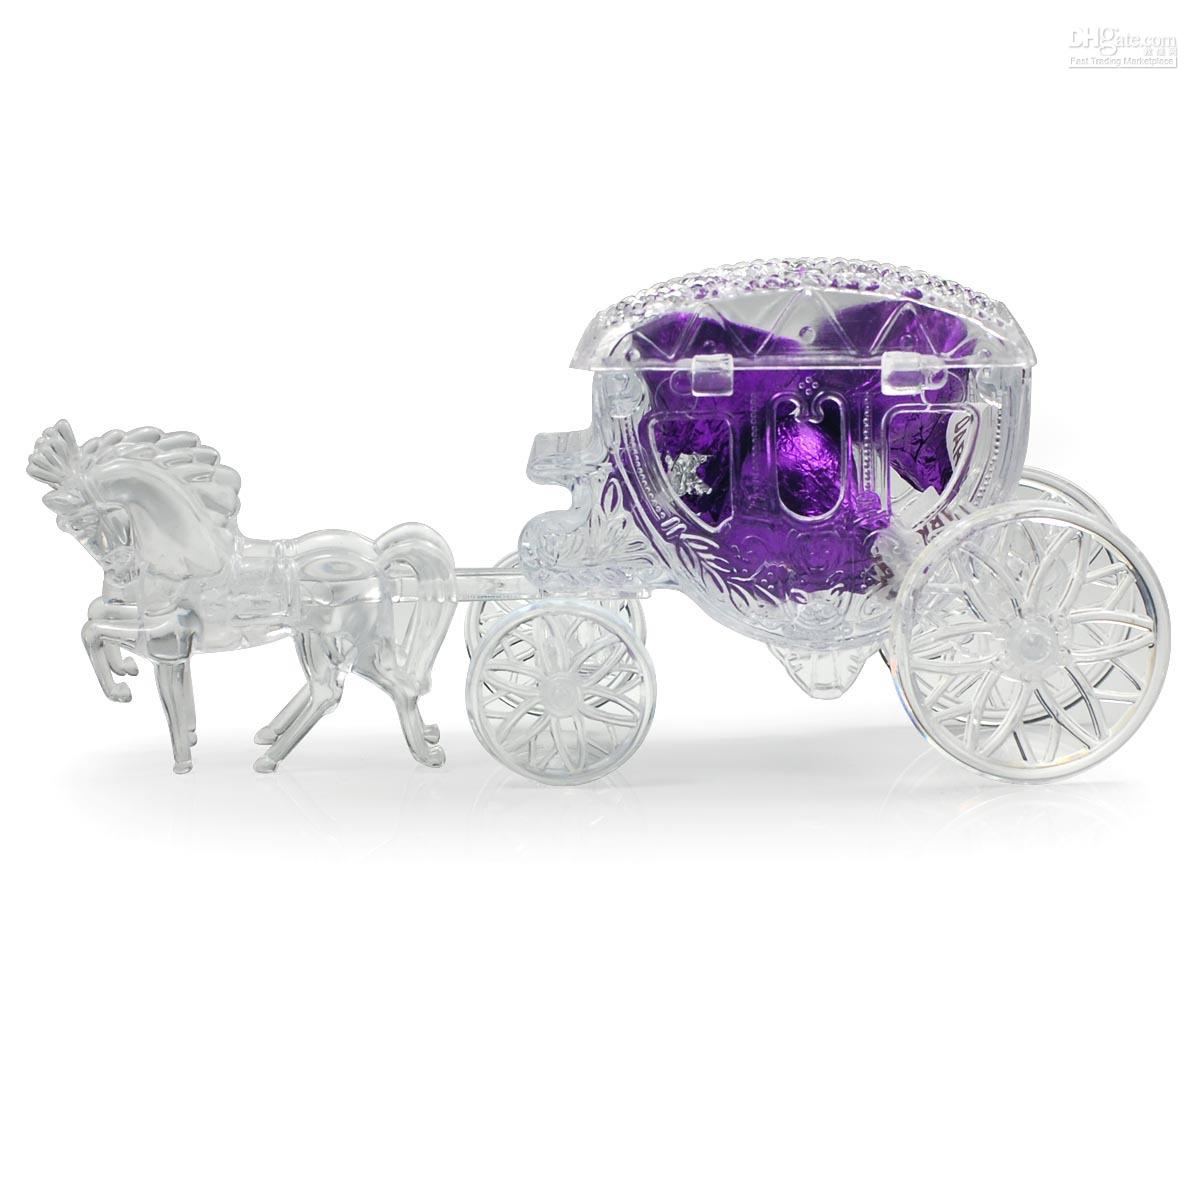 2012-crystal-fairy-tale-carriage-candy-boxes 20 unique wedding giveaways ideas